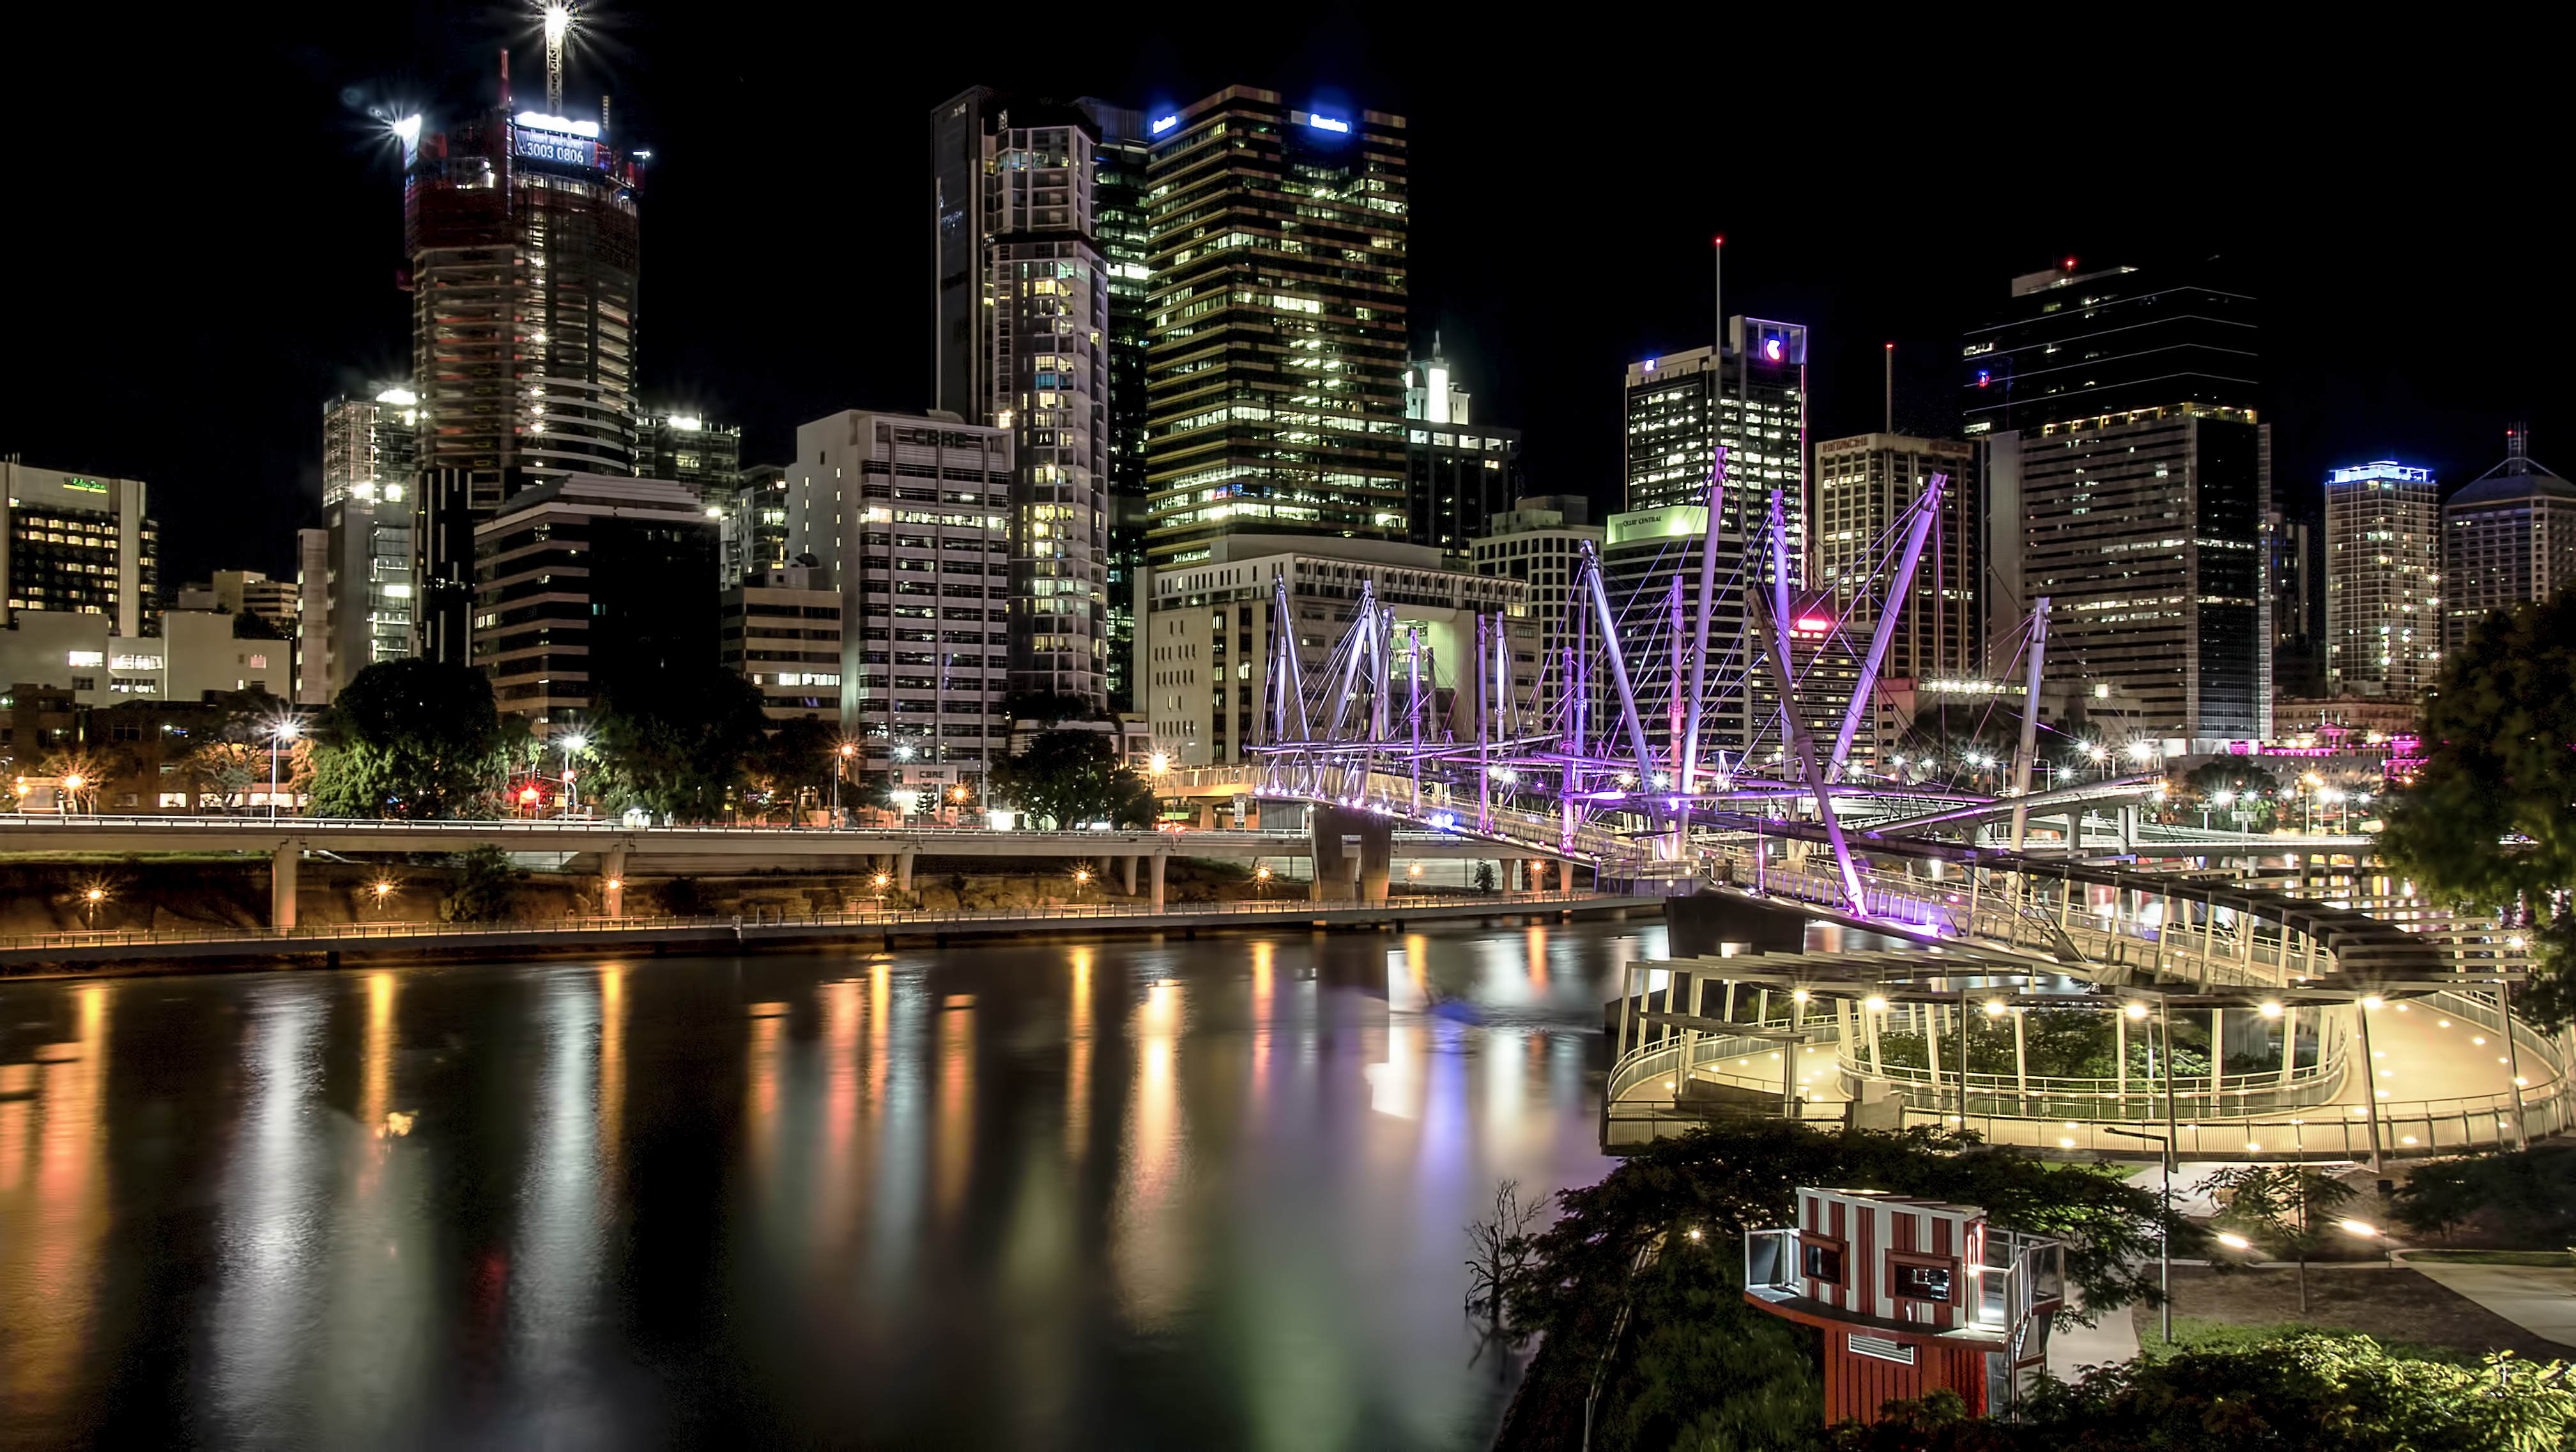 Brisbane Kurilpa Bridge at night